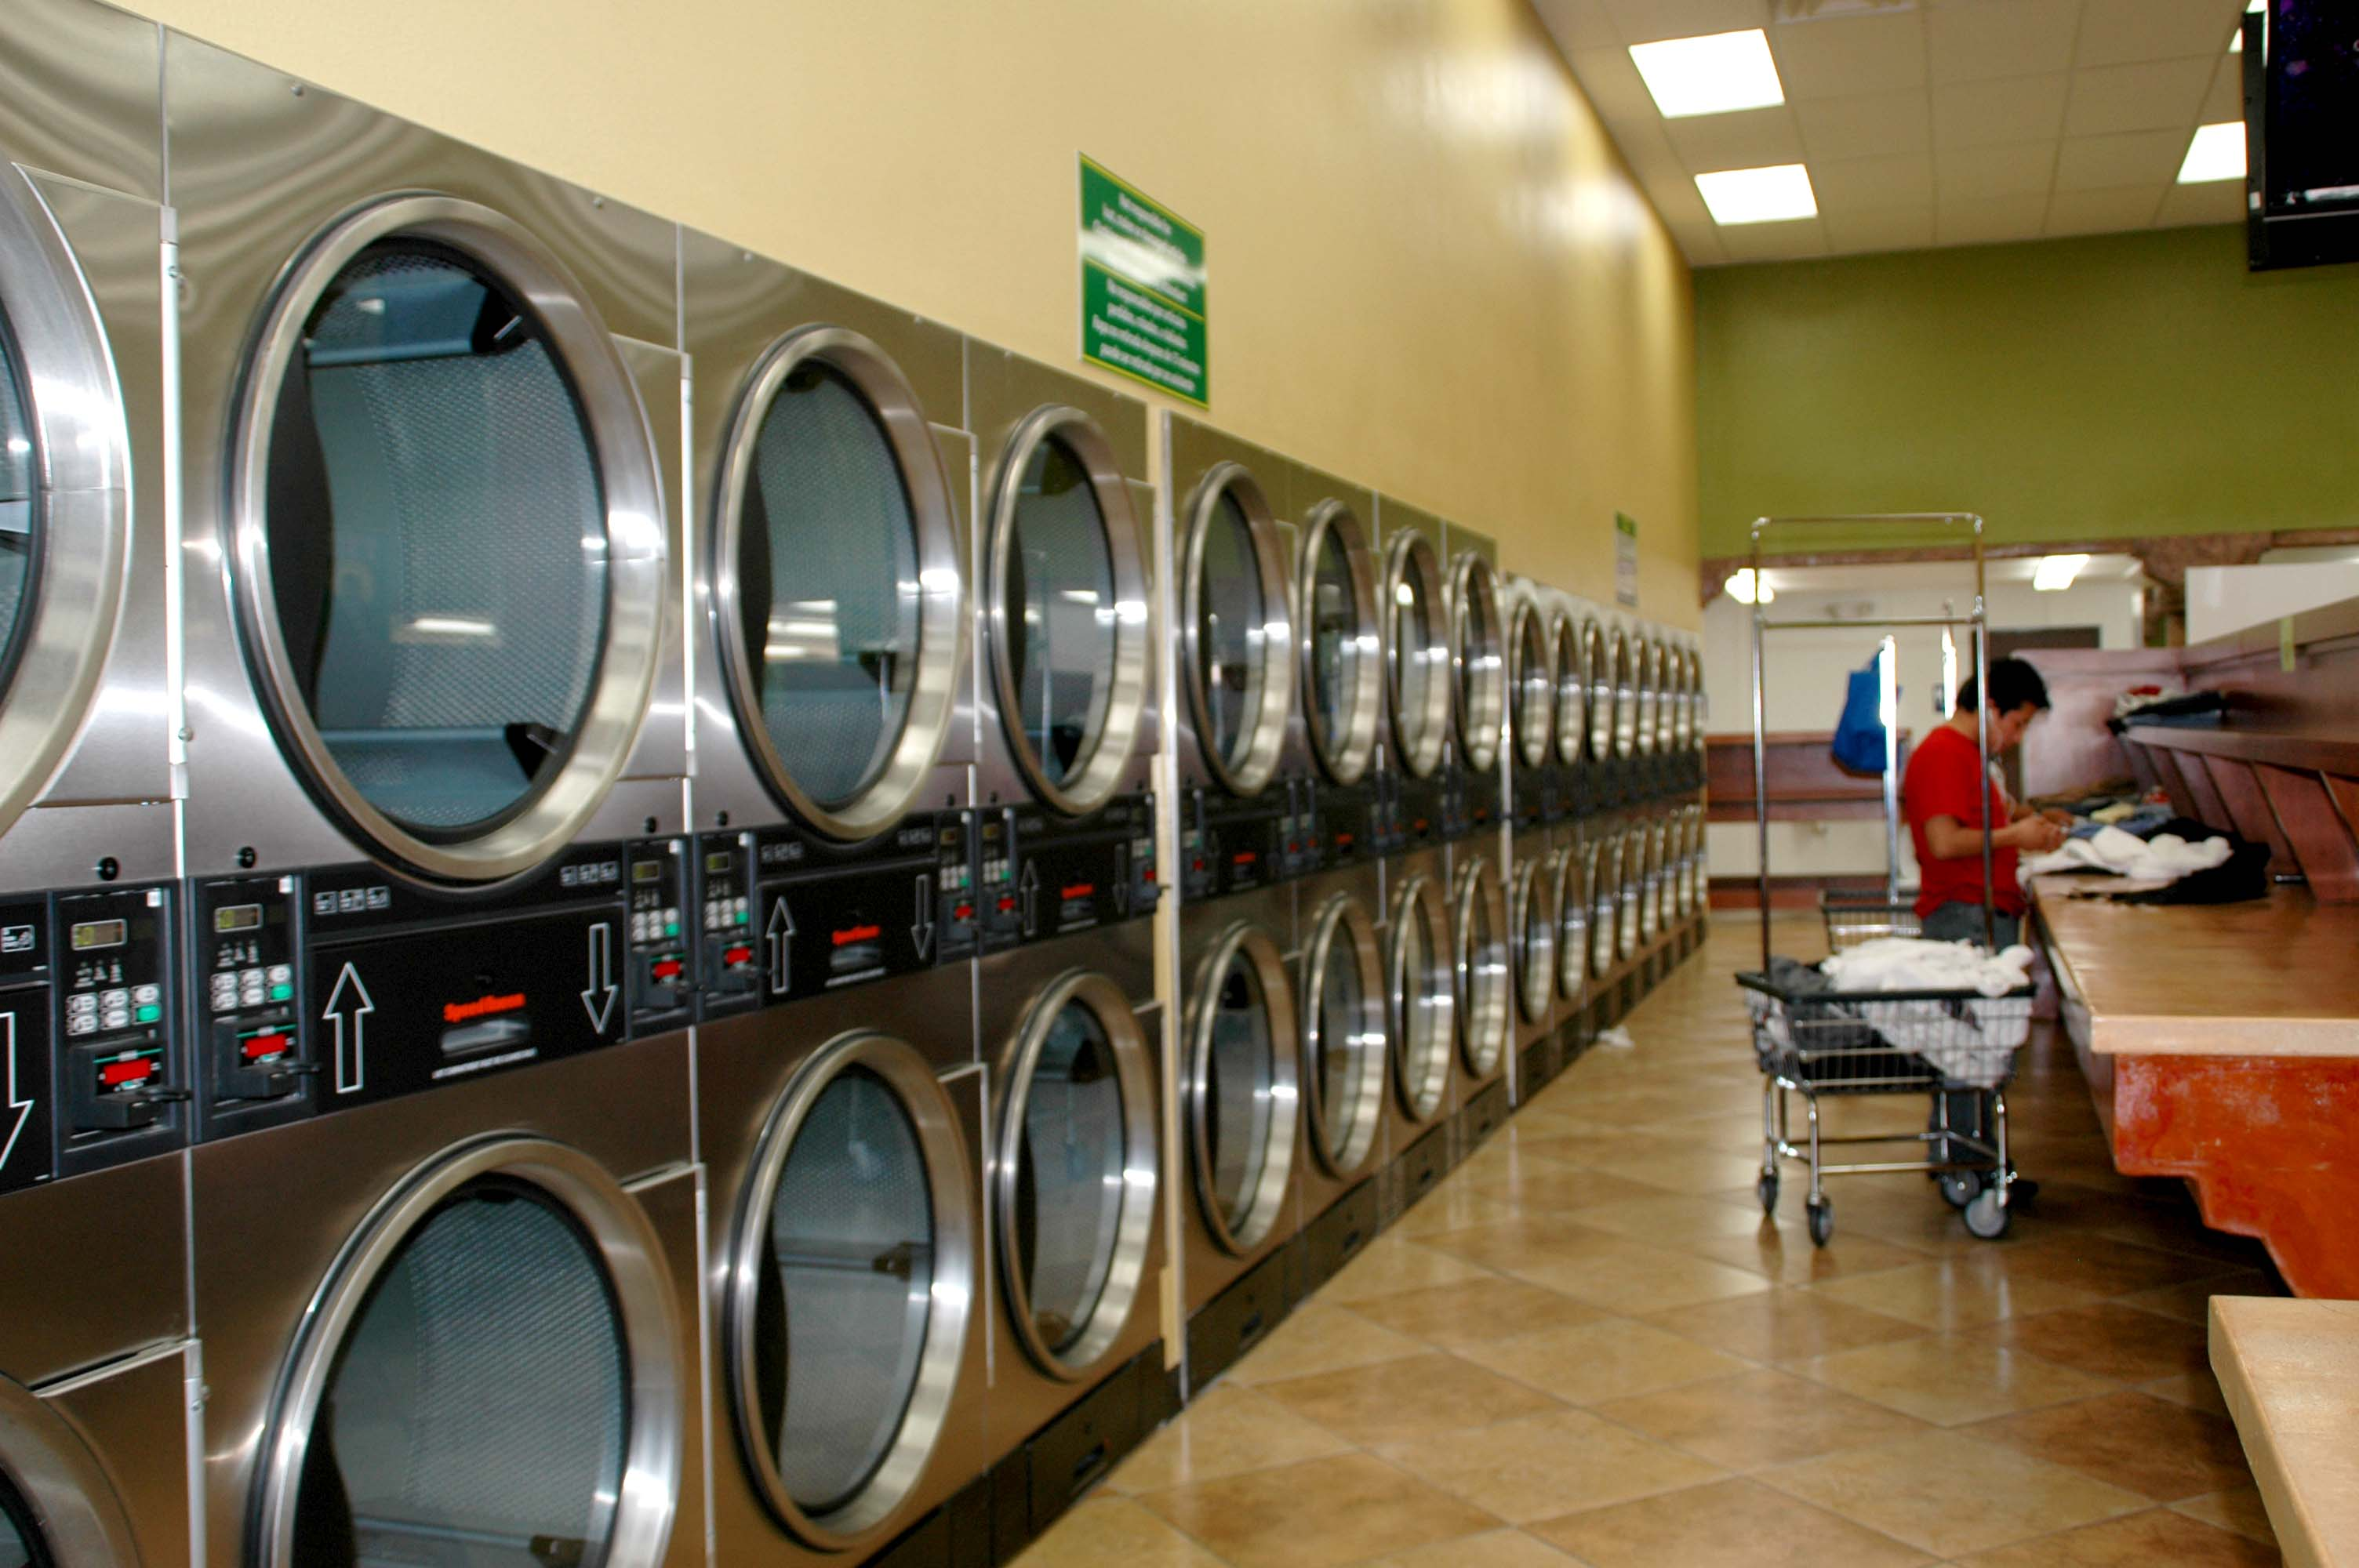 Commercial Building Floor Plans Free Build A New Laundromat Coin Laundry Design Services